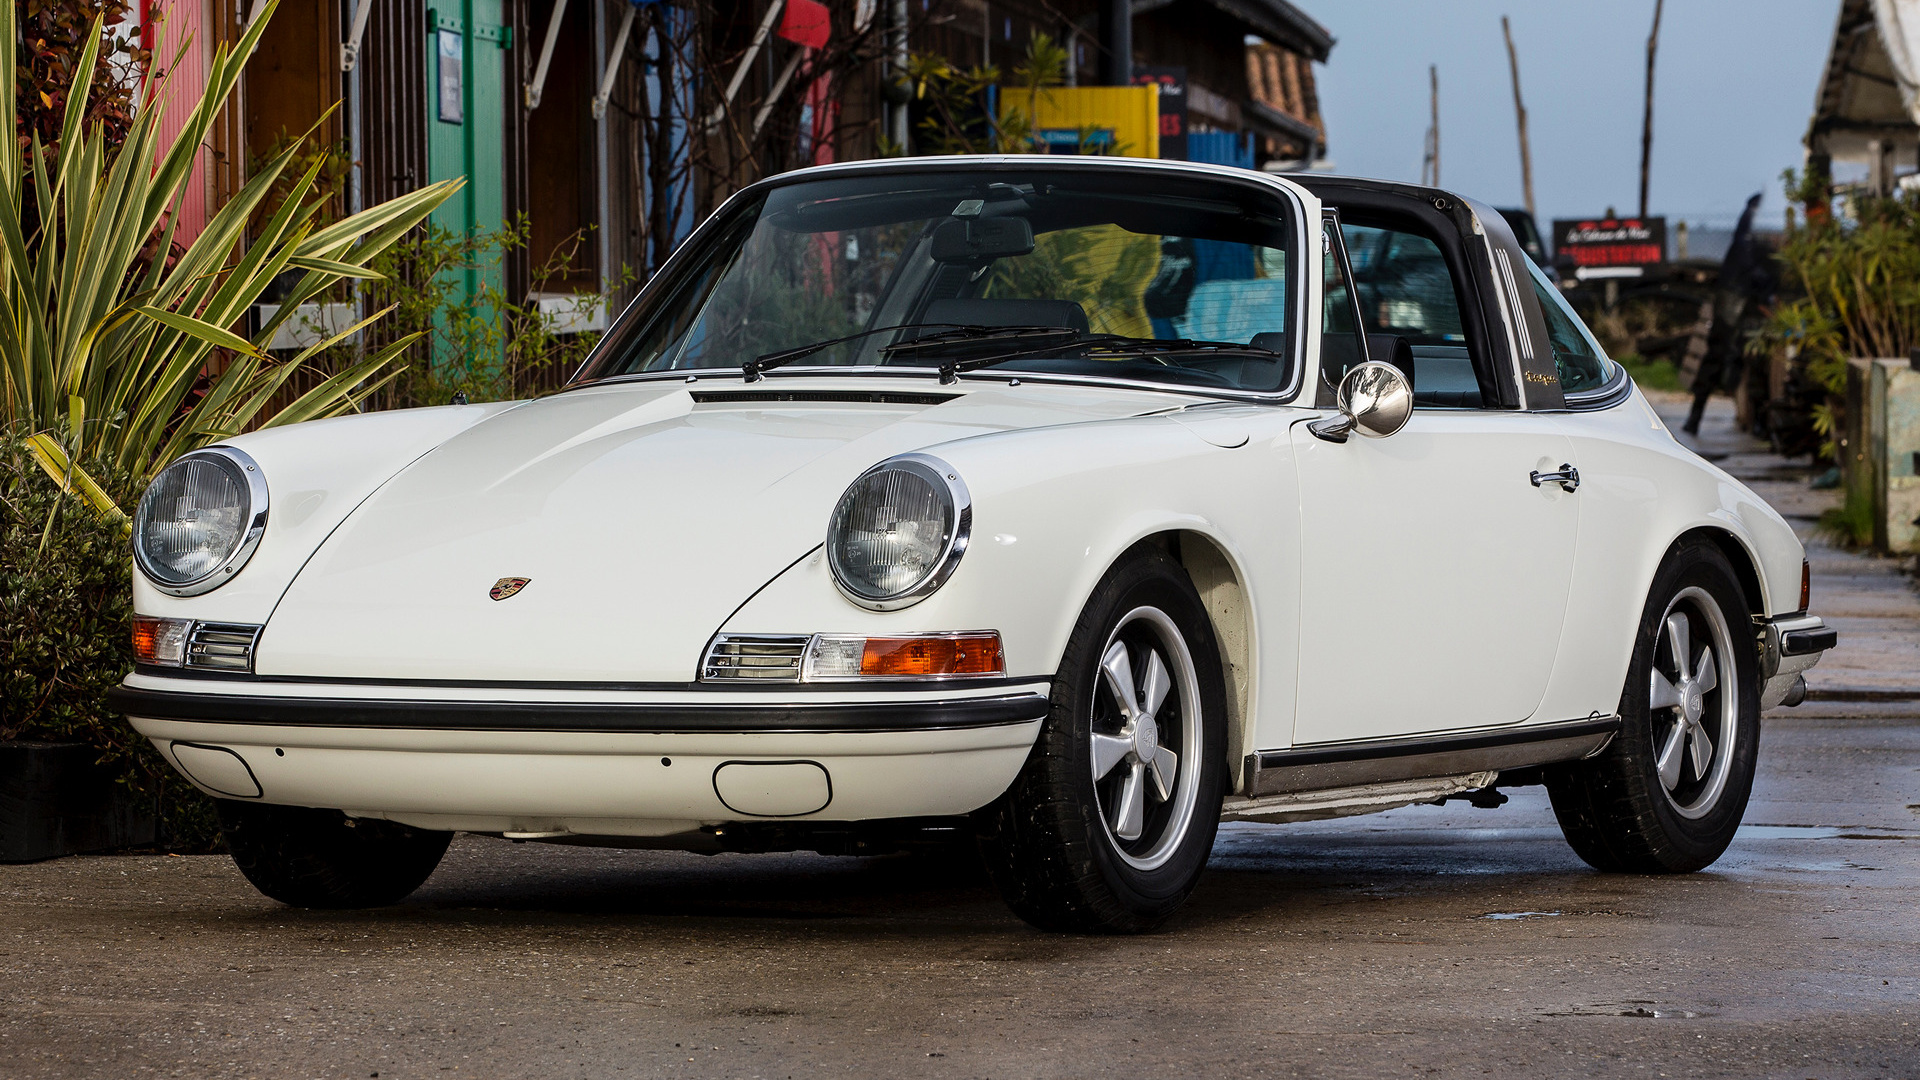 Targa Rwb Walpaper: 1966 Porsche 911 S Targa - Wallpapers And HD Images